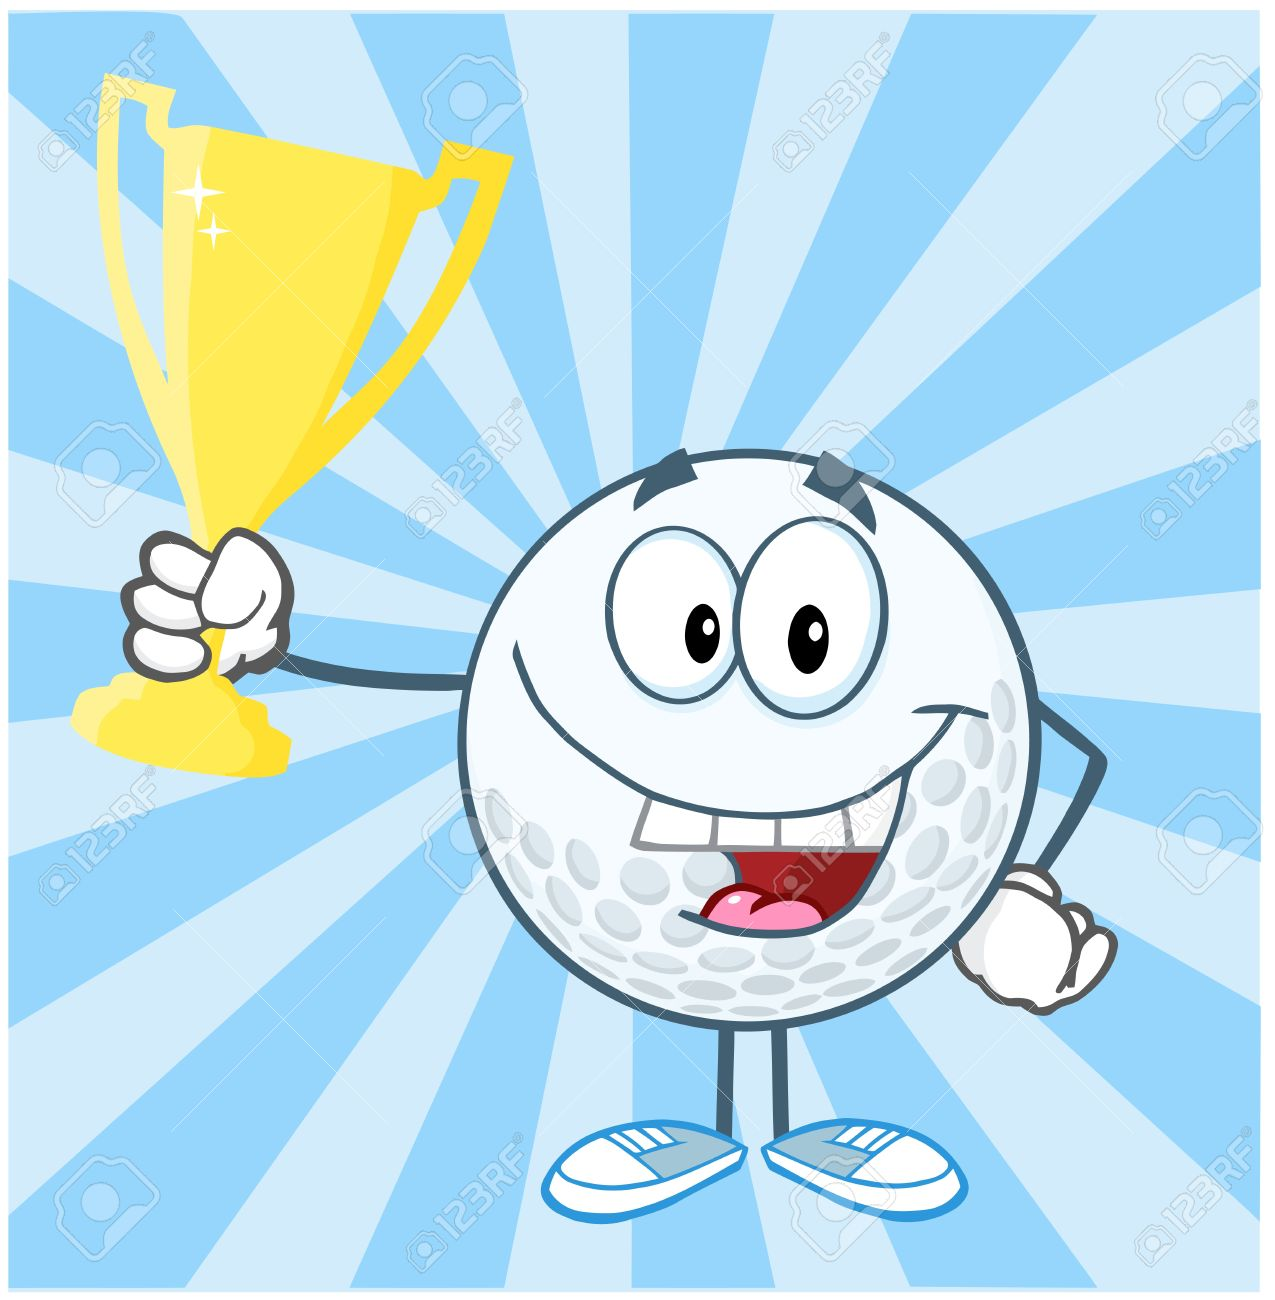 Golf Ball Cartoon Character Holding Prize Trophy Cup Royalty Free Cliparts Vectors And Stock Illustration Image 20749090